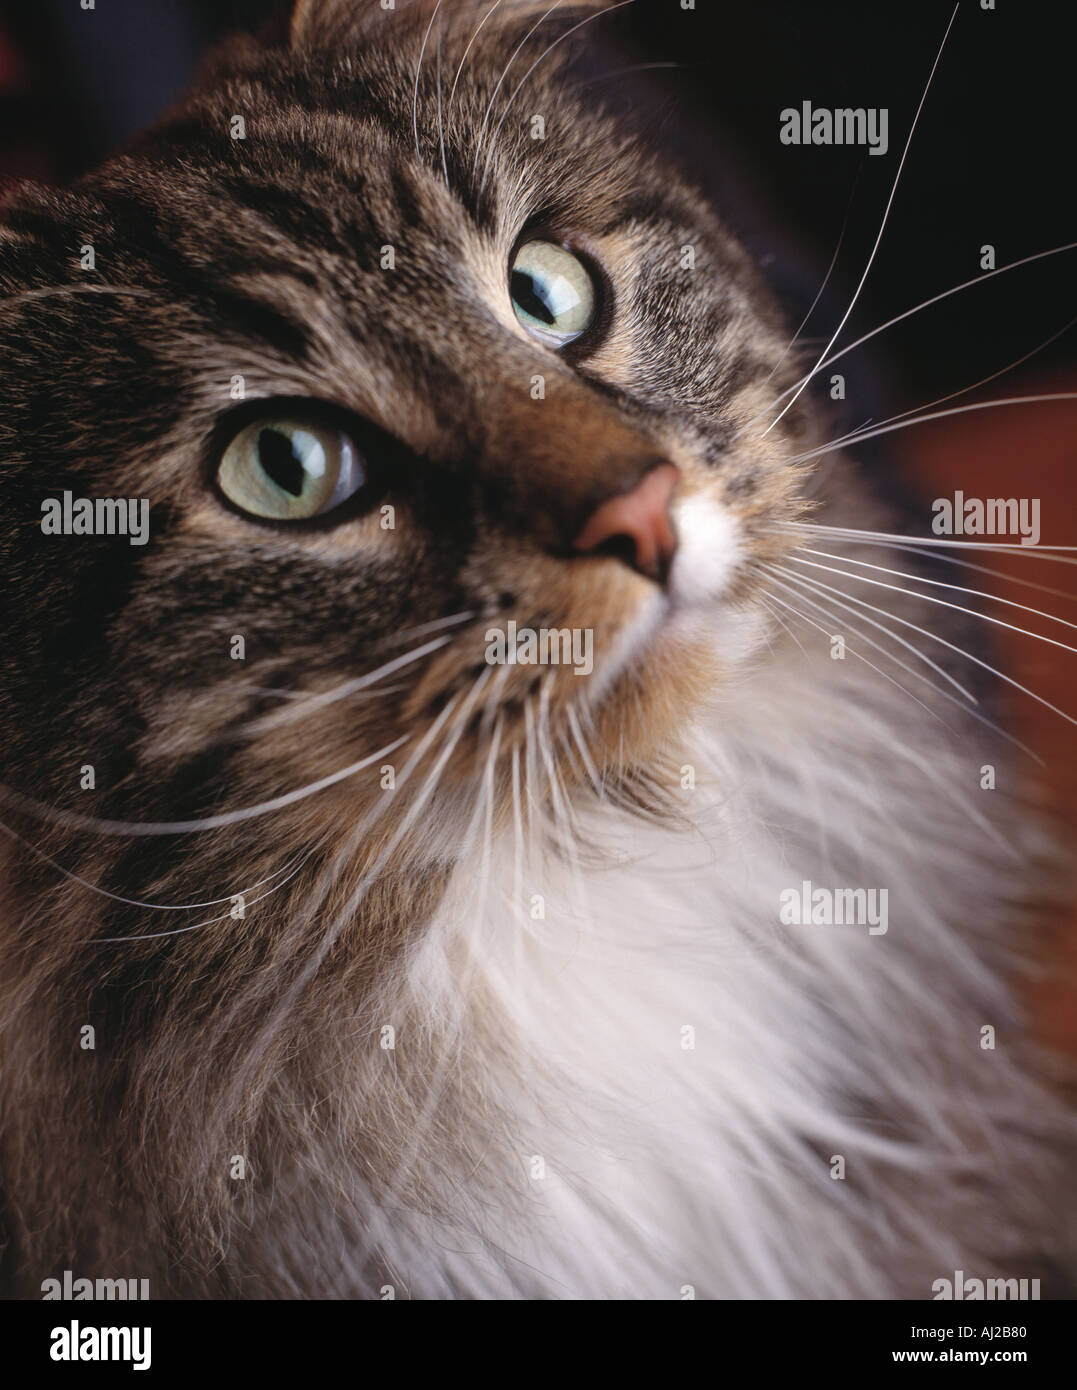 tabby cat in profile with long hair - Stock Image